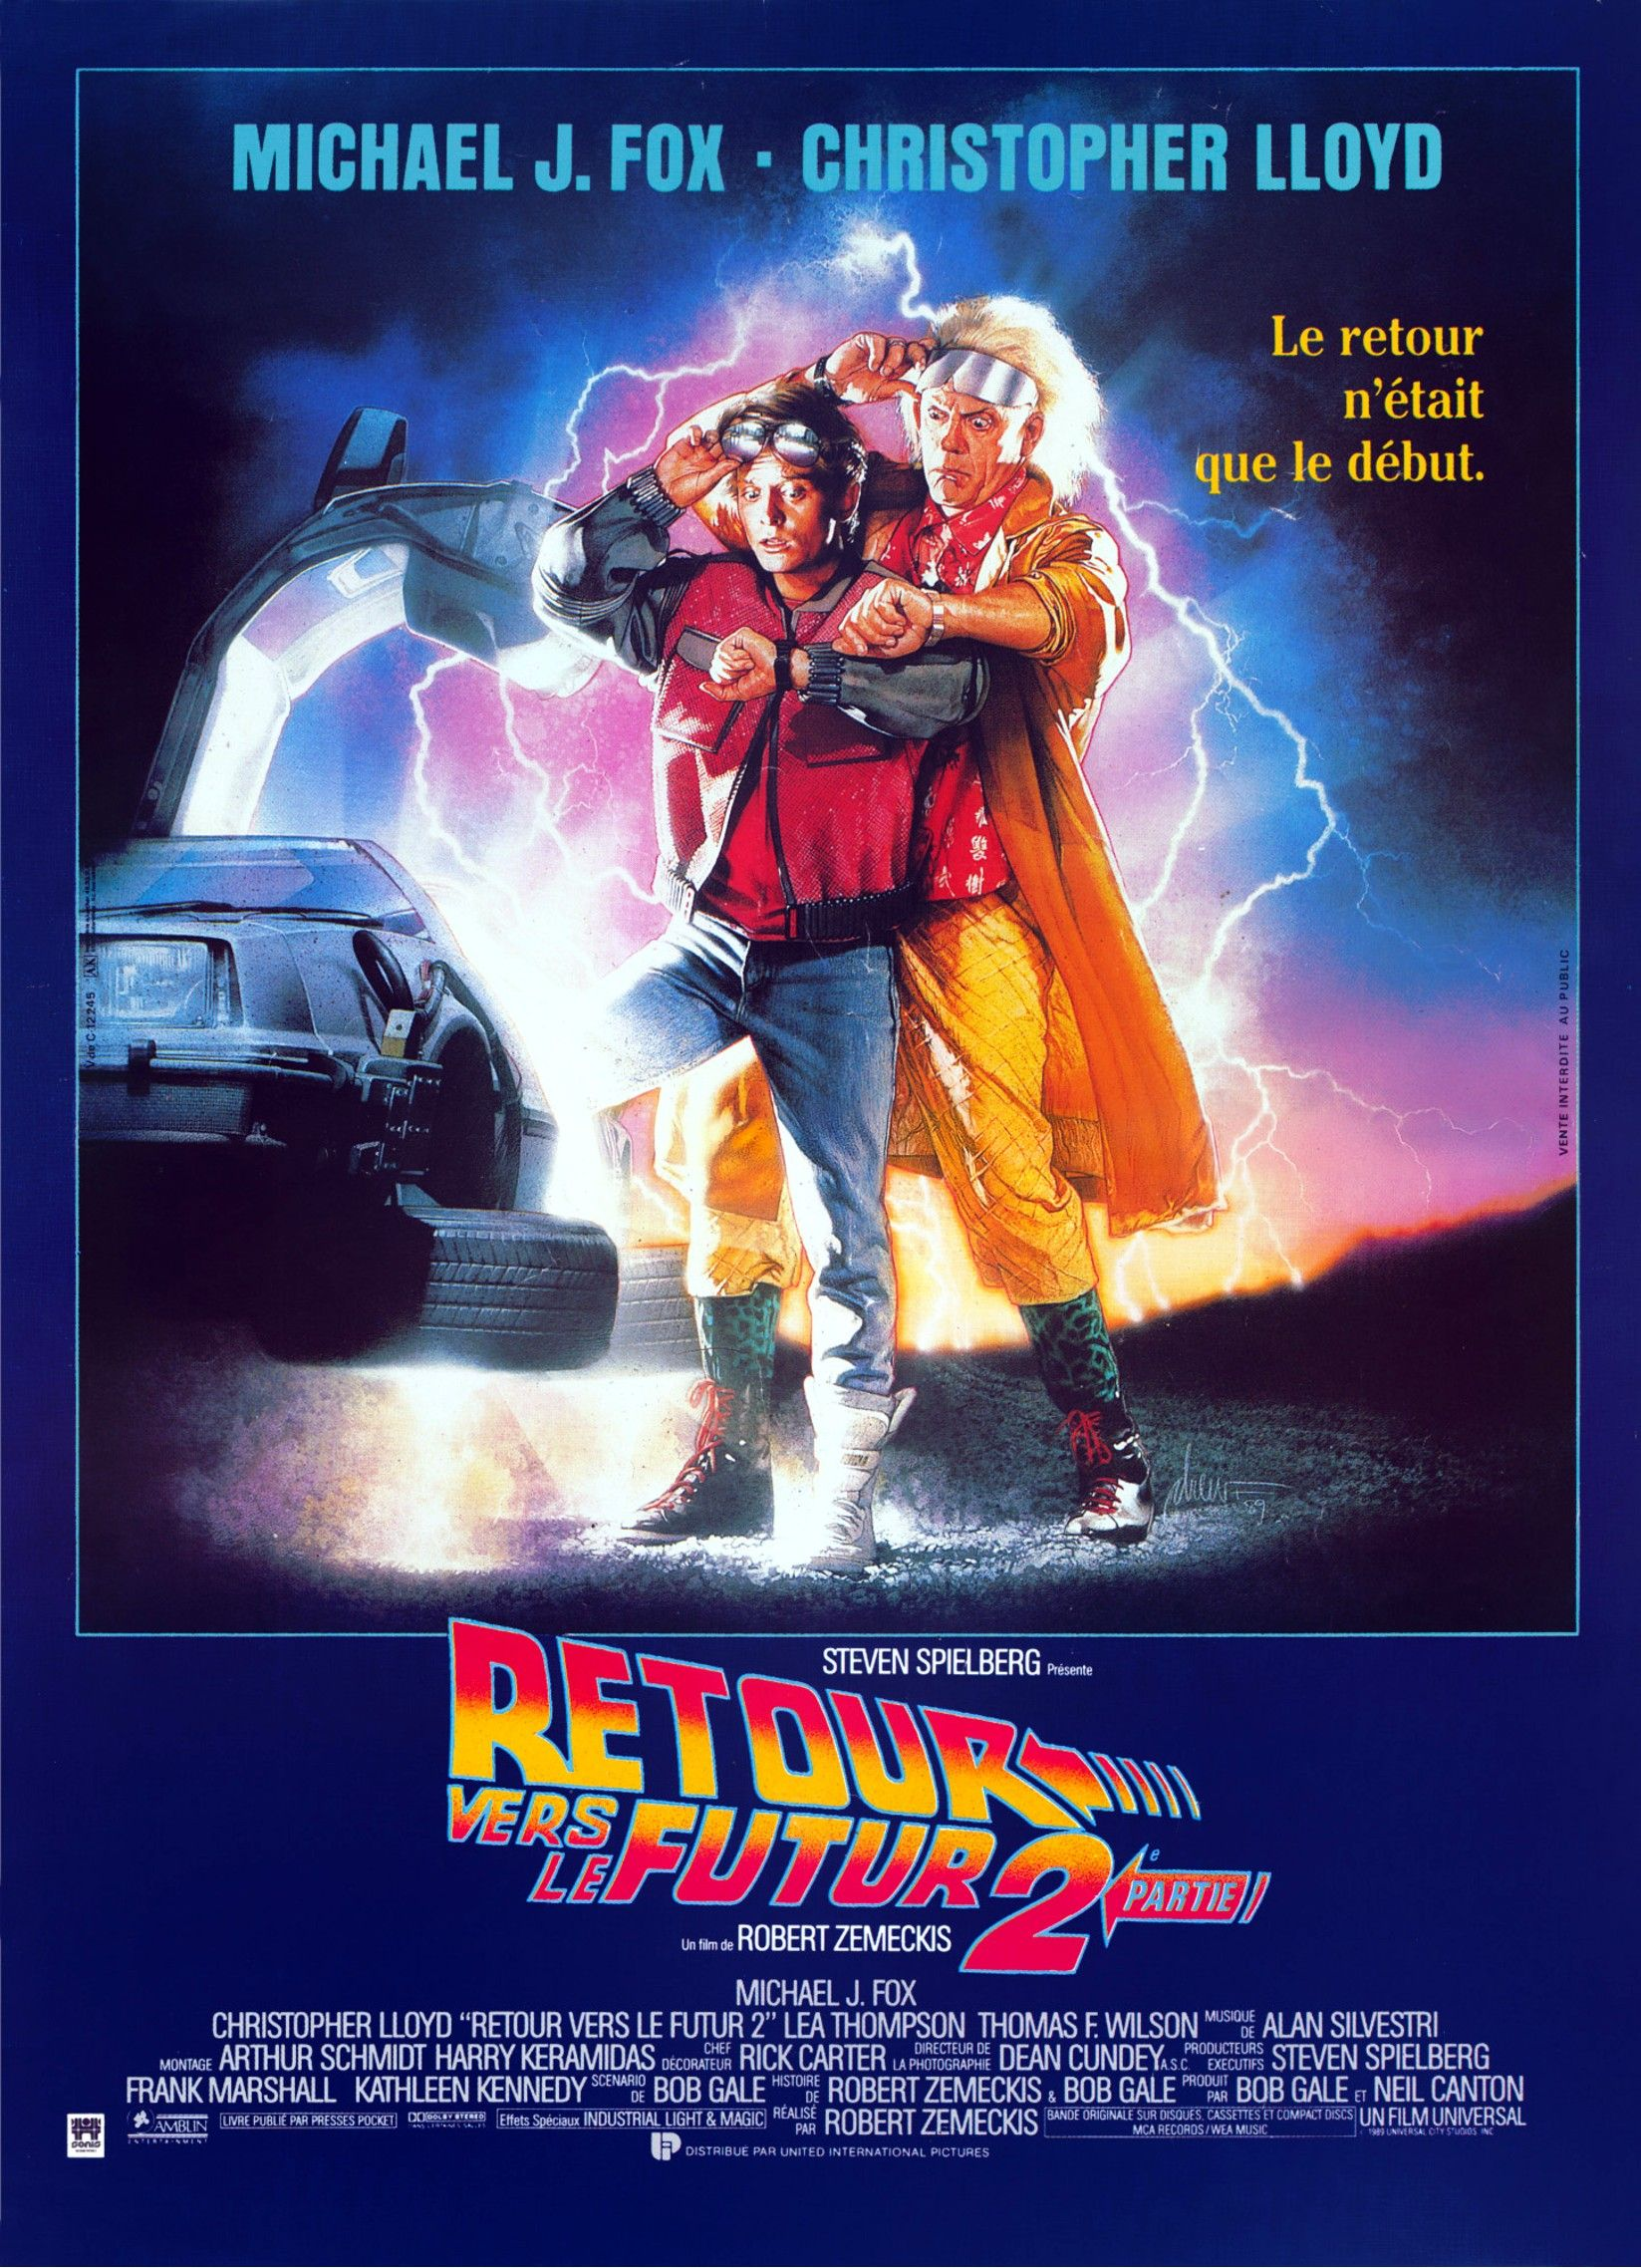 Retour vers le futur 2 1989 back to the future part ii 1 2 3 4 5 6